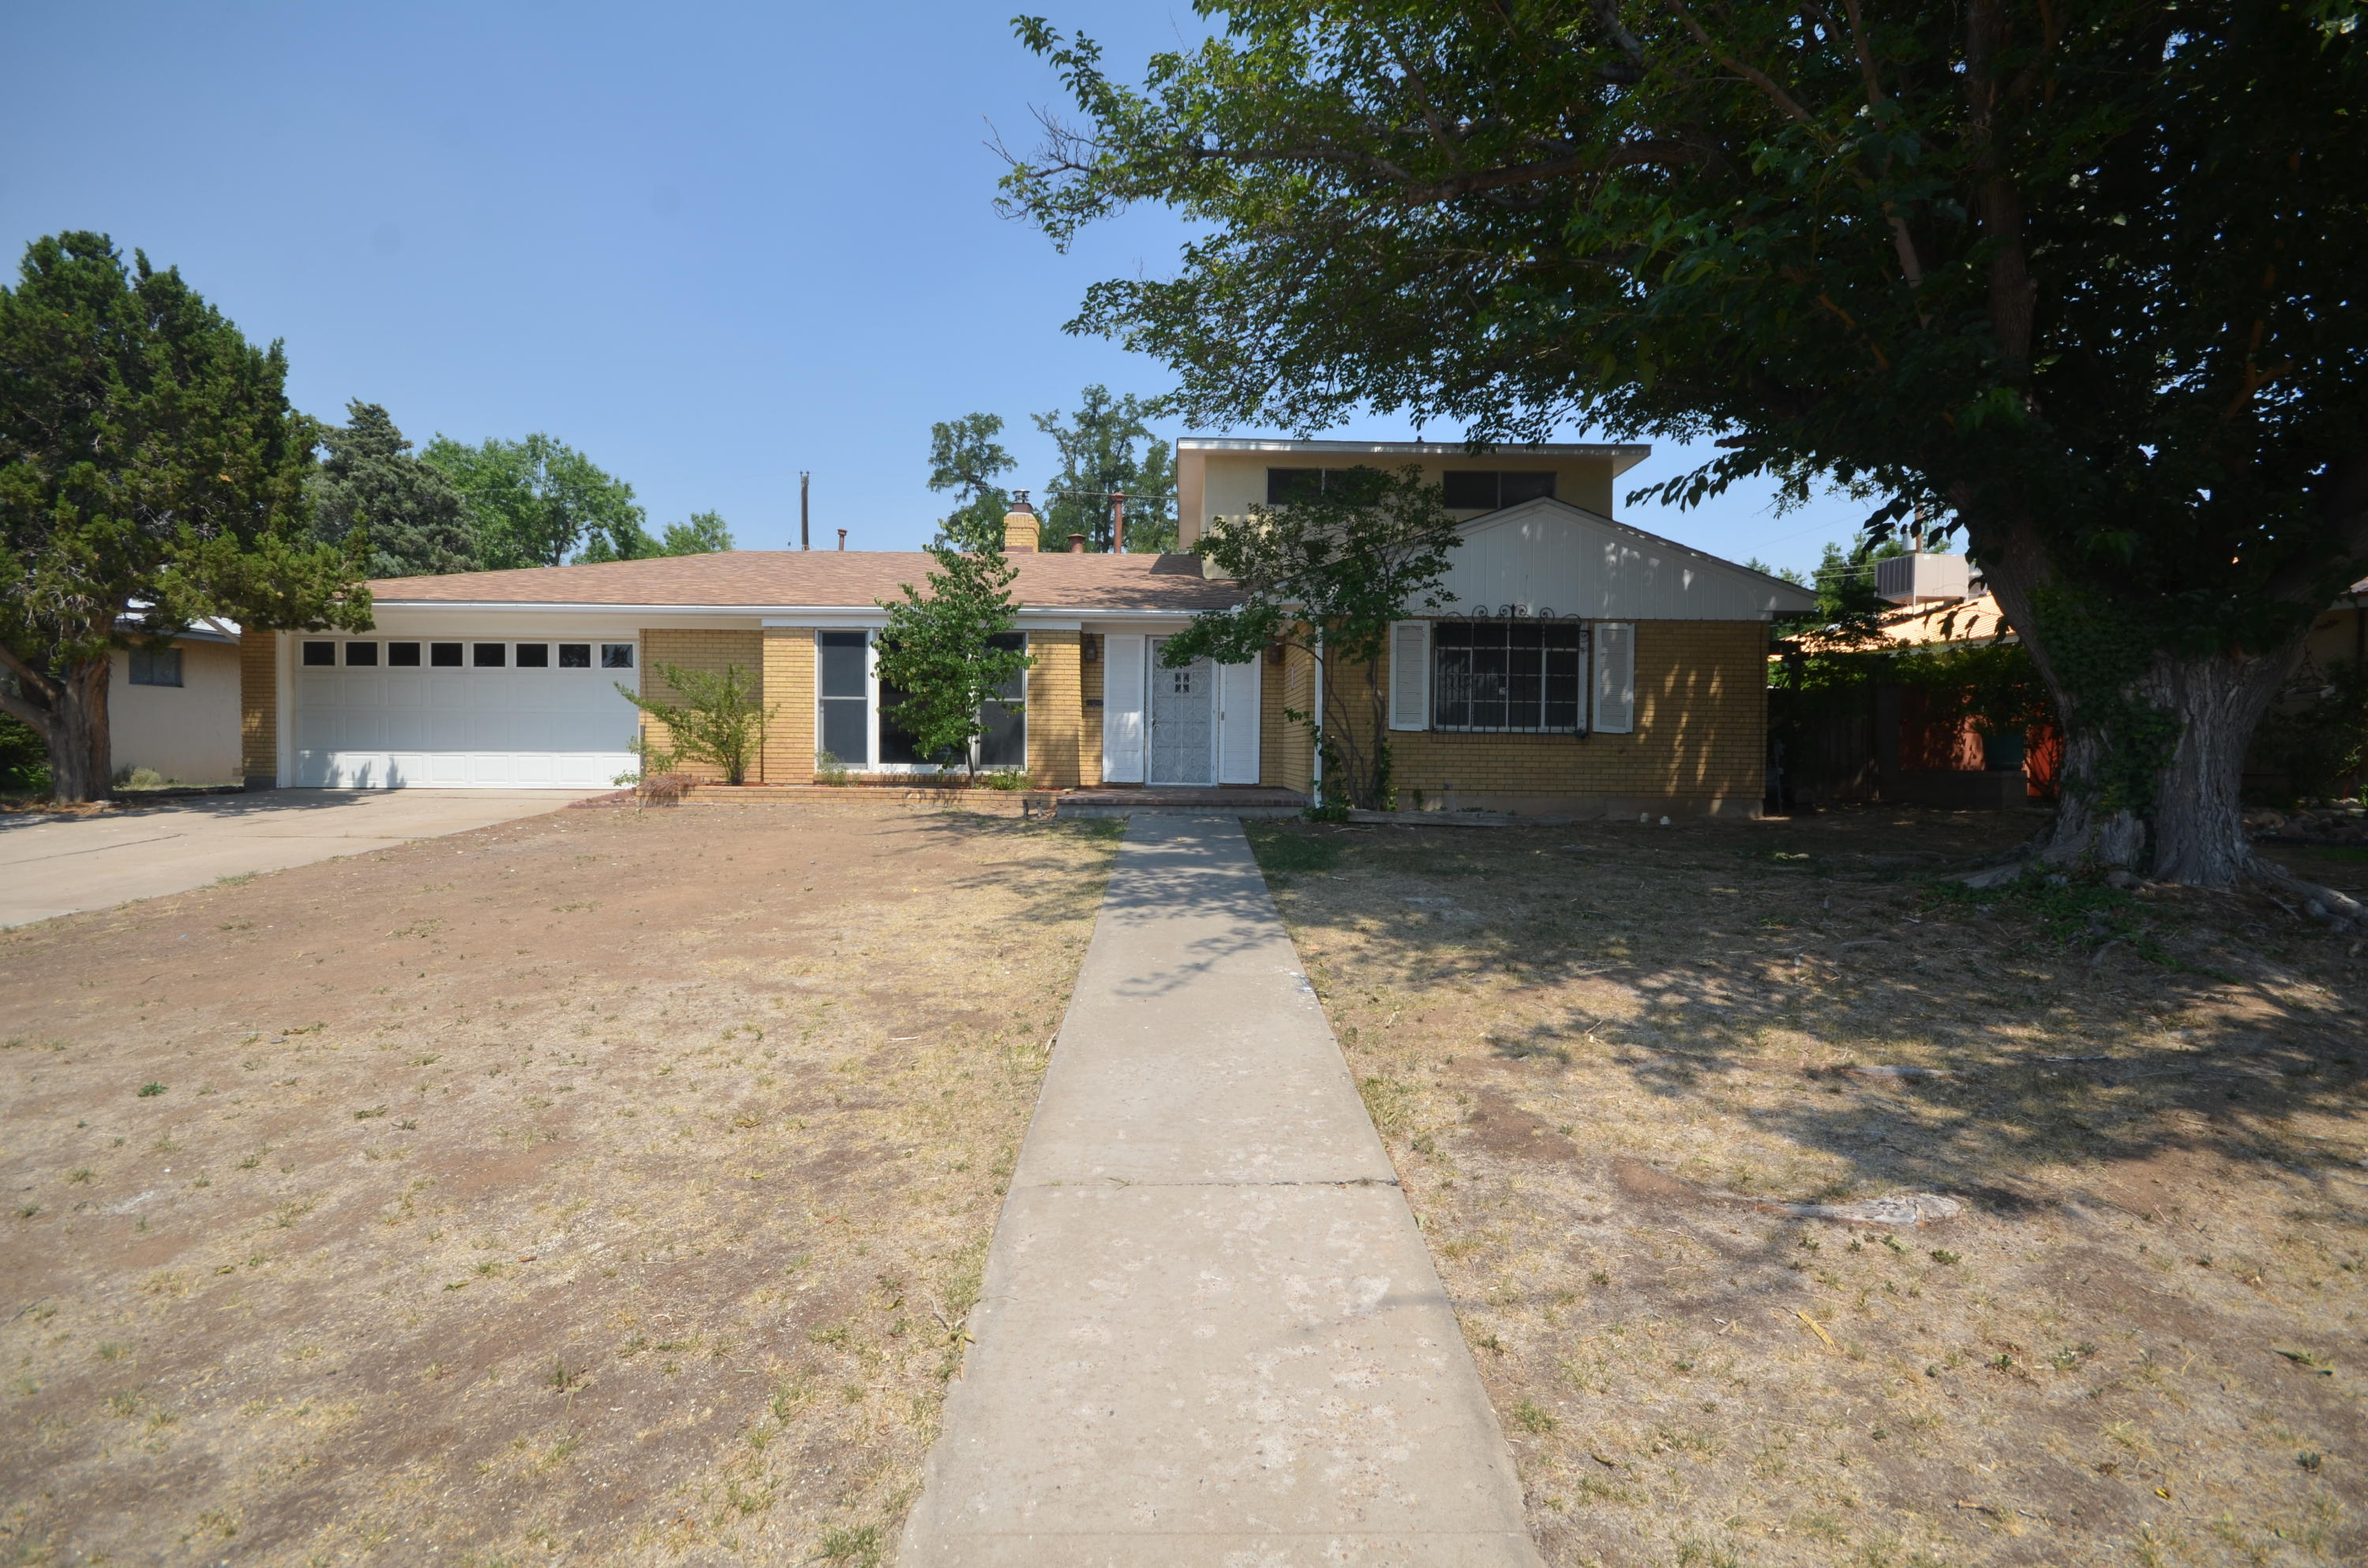 A Gorgeous Mossman home in a beautiful established neighborhood  Home features 3 wood burning fireplaces. Large living room, Family dining room. Kitchen offers updated stainless whirlpool appliances,  breakfast bar and breakfast nook. 2 Master suites 1 up 1 down.  Spacious den opens to a covered back patio, & more!  Freshly painted! New flooring! Family Home In Need Of New Owners!